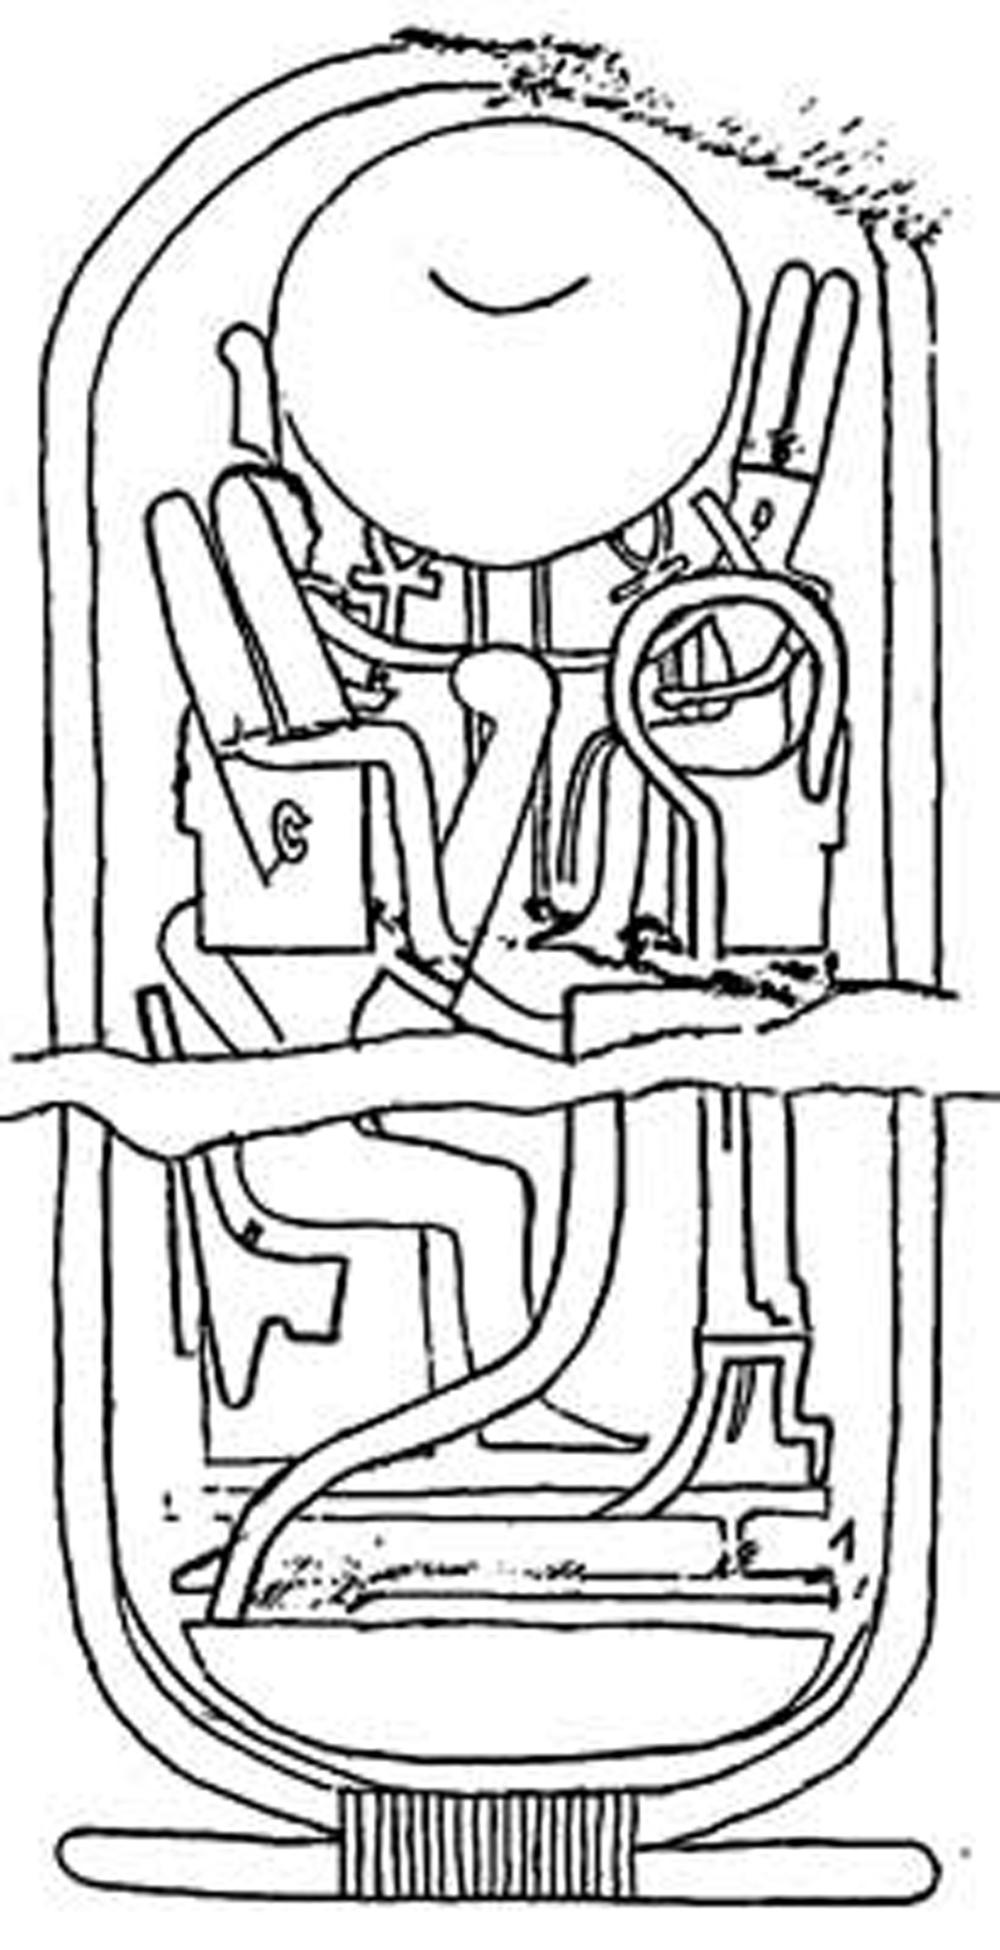 Ramesses IV usurped cartouche drawing